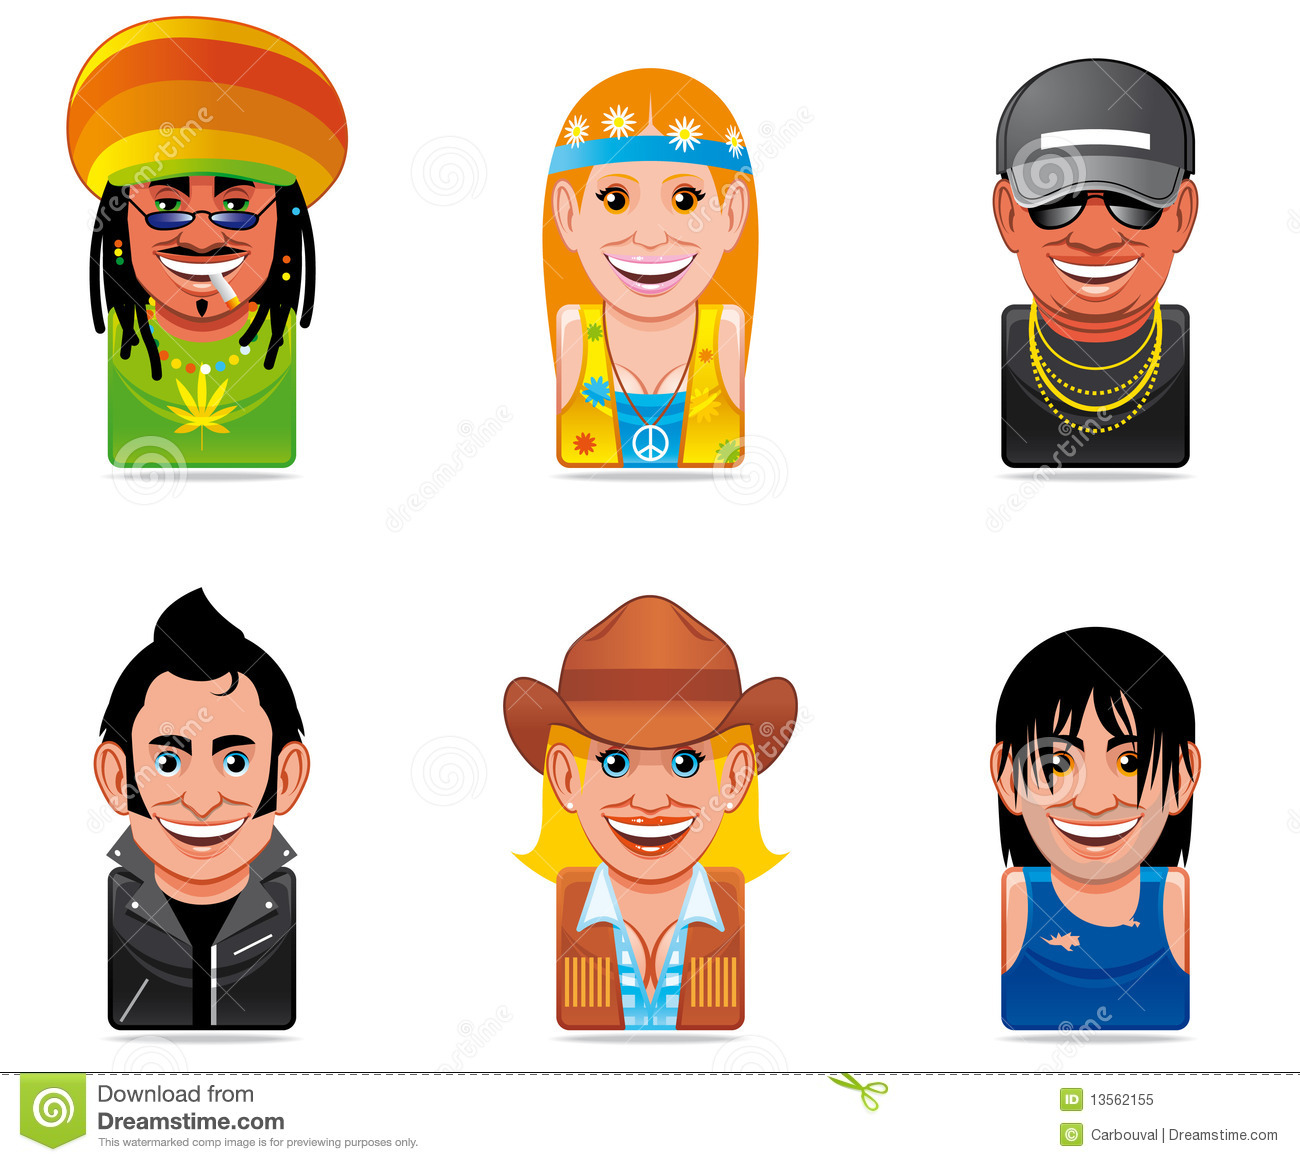 Cartoon People Icon